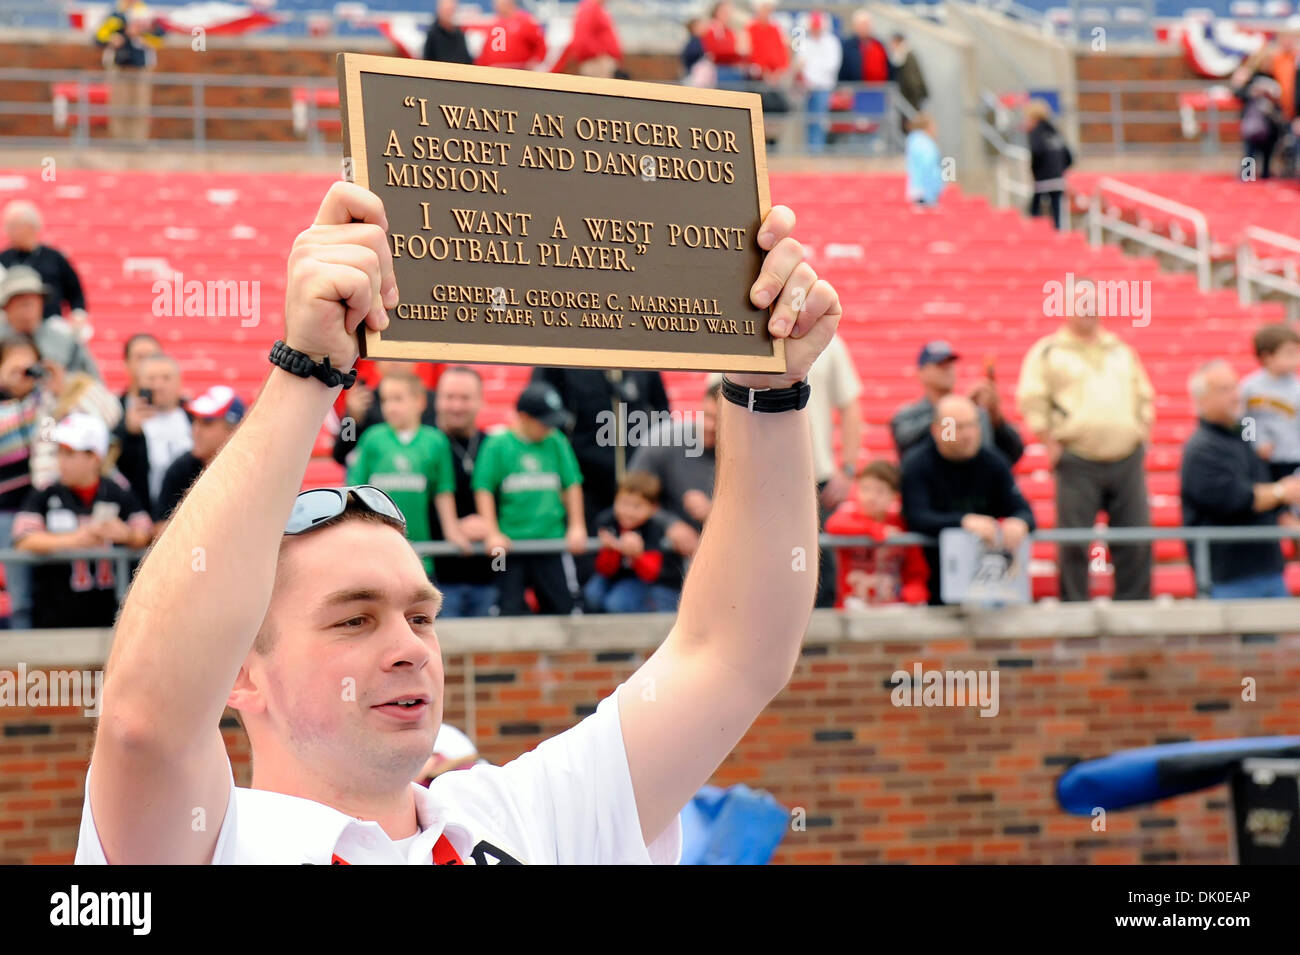 General George C Marshall Quotes - 30 2010 dallas texas u s west point football players slap the plate which contains a quote from general george c marshall while exiting the field